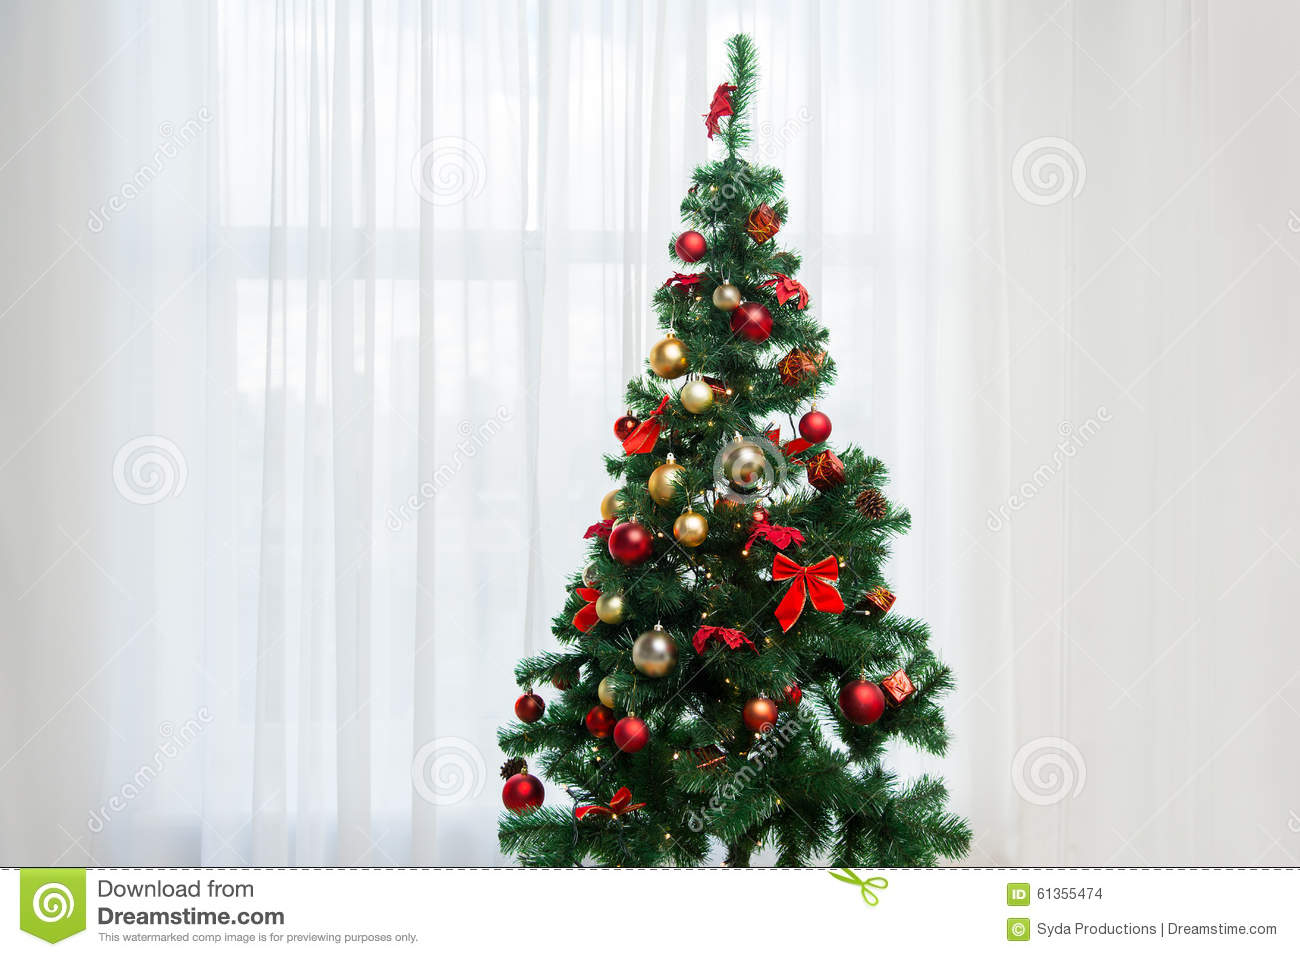 Christmas Tree In Living Room christmas tree in living room over window curtain stock photo